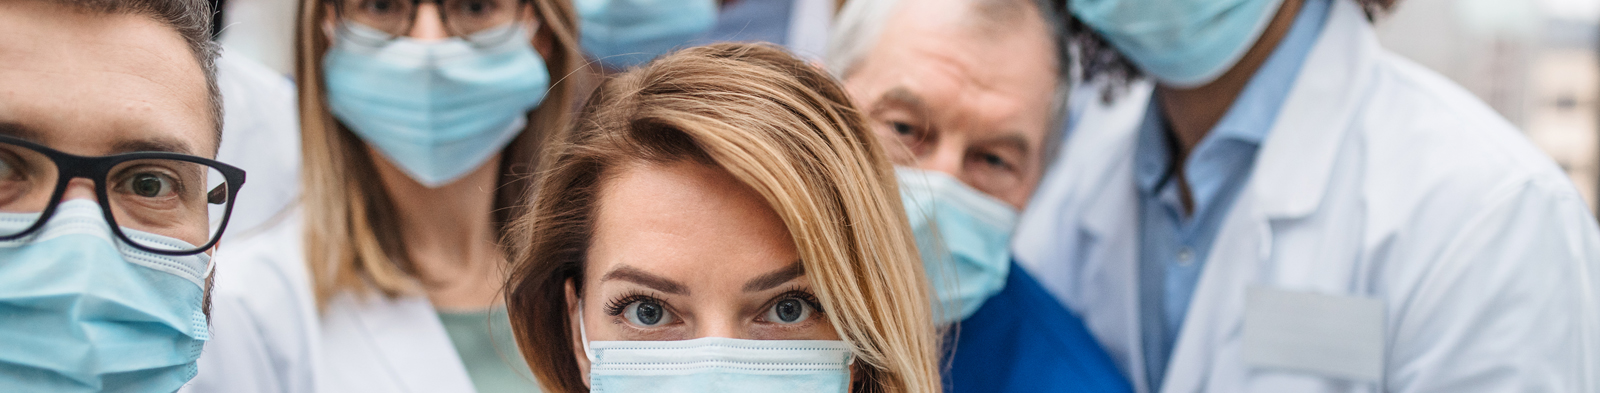 Doctors line up in surgical masks